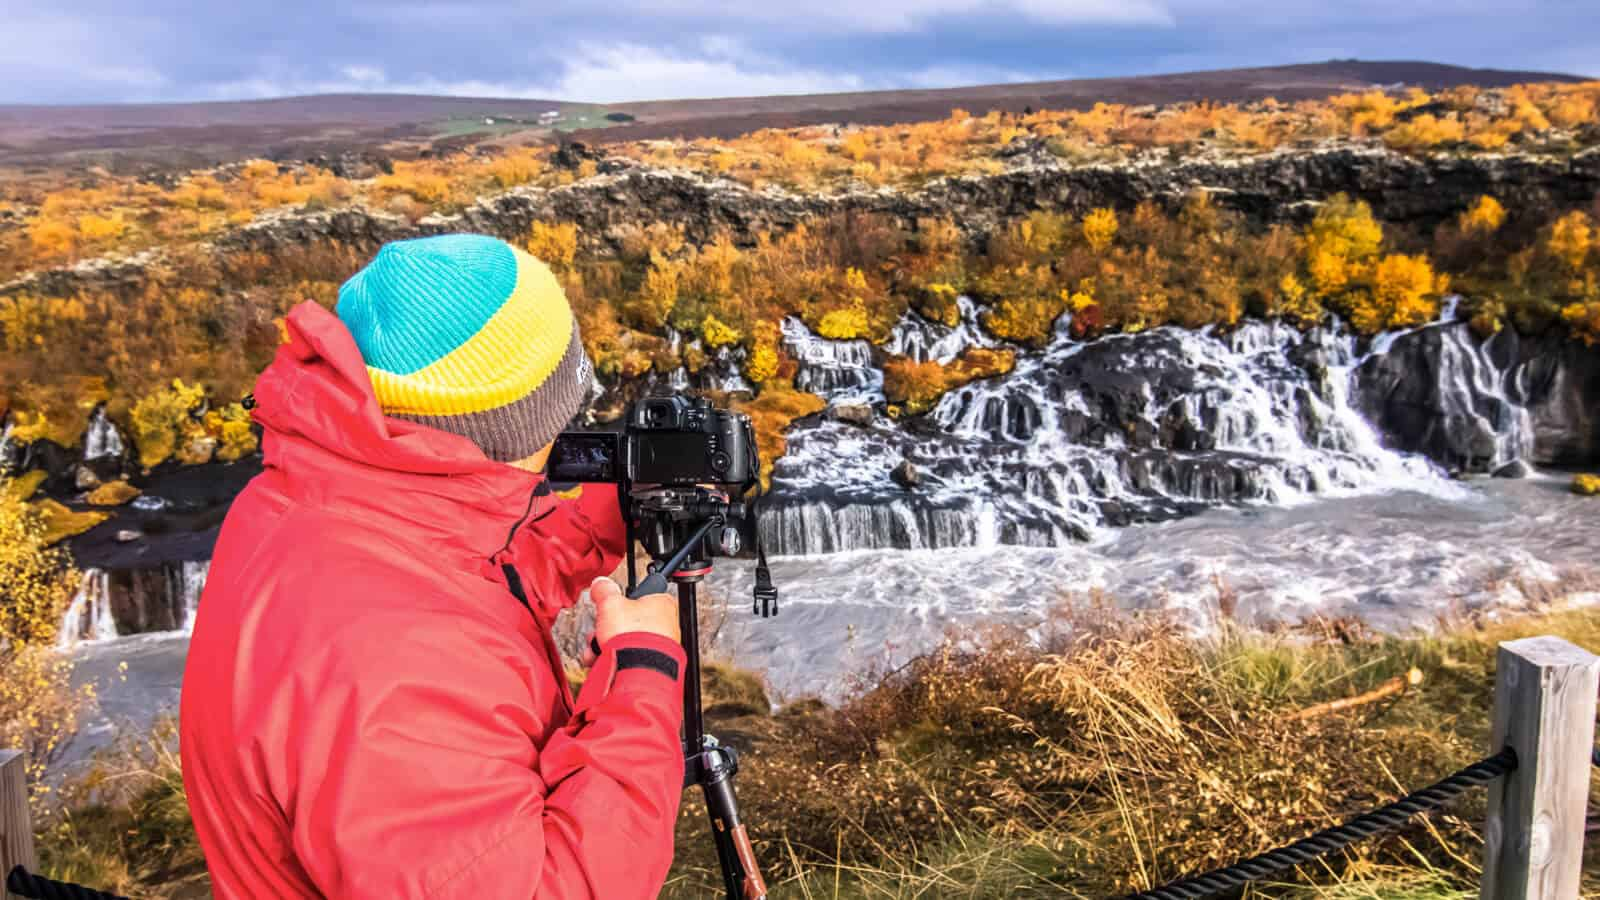 9 of The Best Travel Tripods For Any Snap Happy Traveler (Pro or Not!)